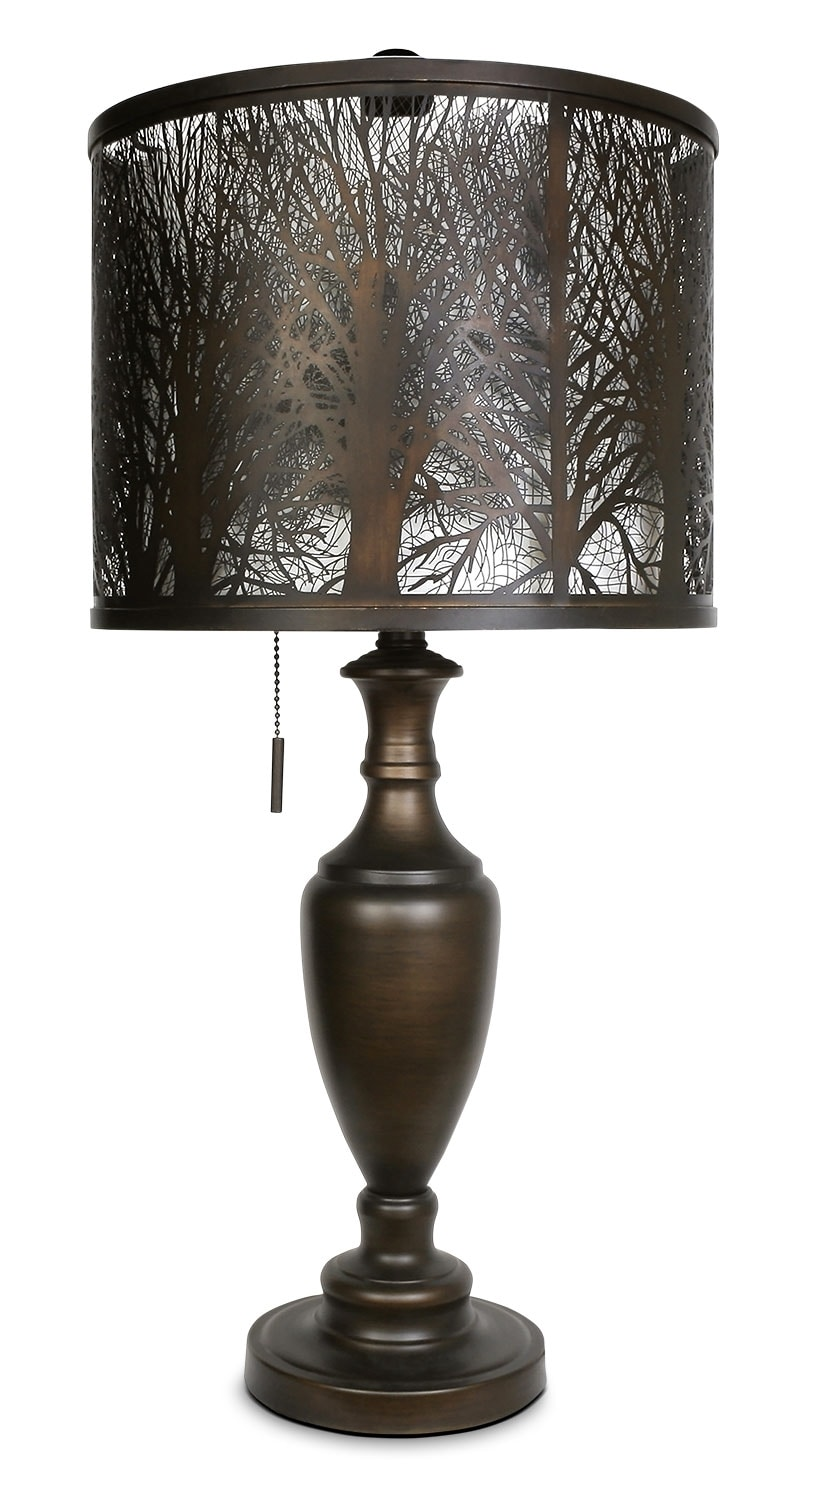 Bean Bronze Table Lamp with Cut-Out Shade